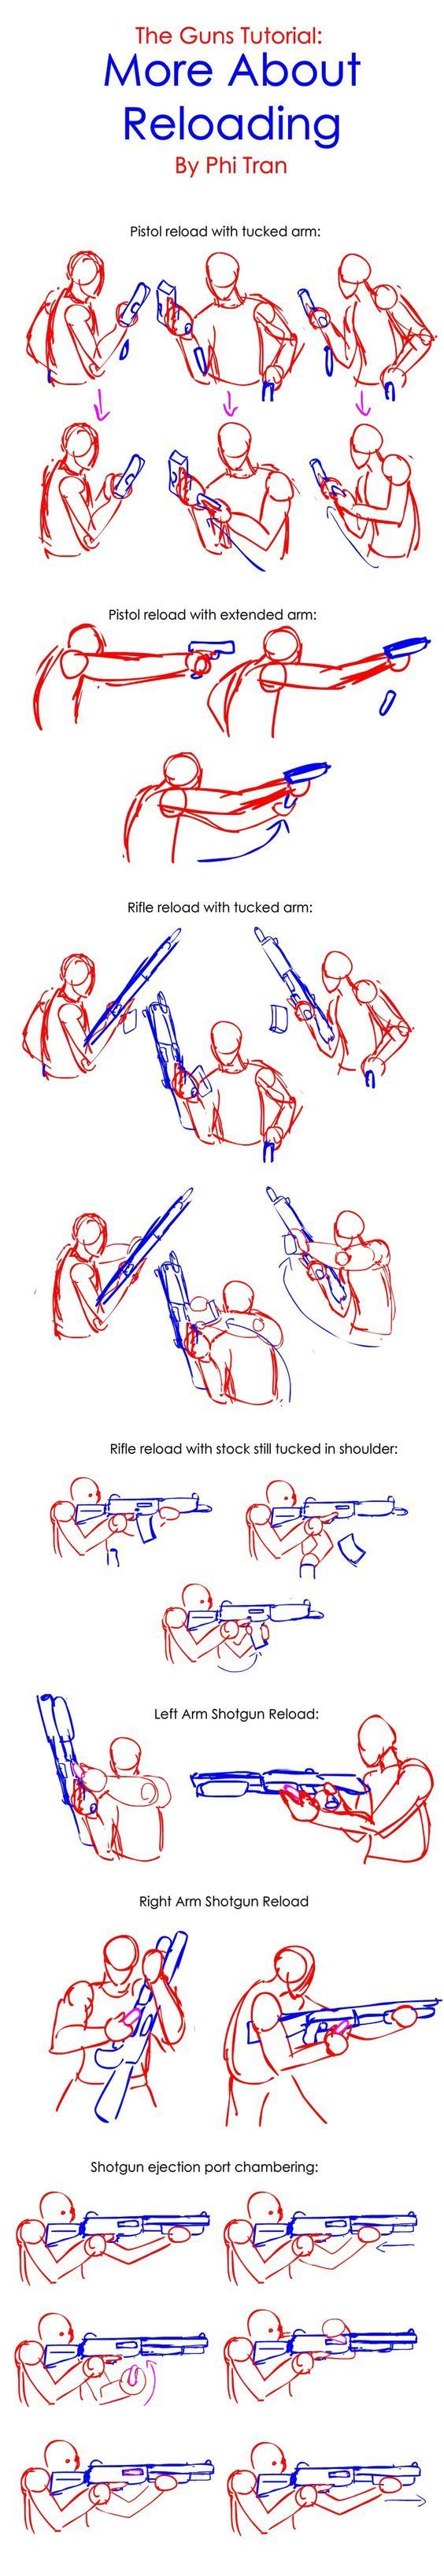 The Guns Mini-Tutorial: More About Reloading by PhiTuS.deviantart.com on @DeviantArt: